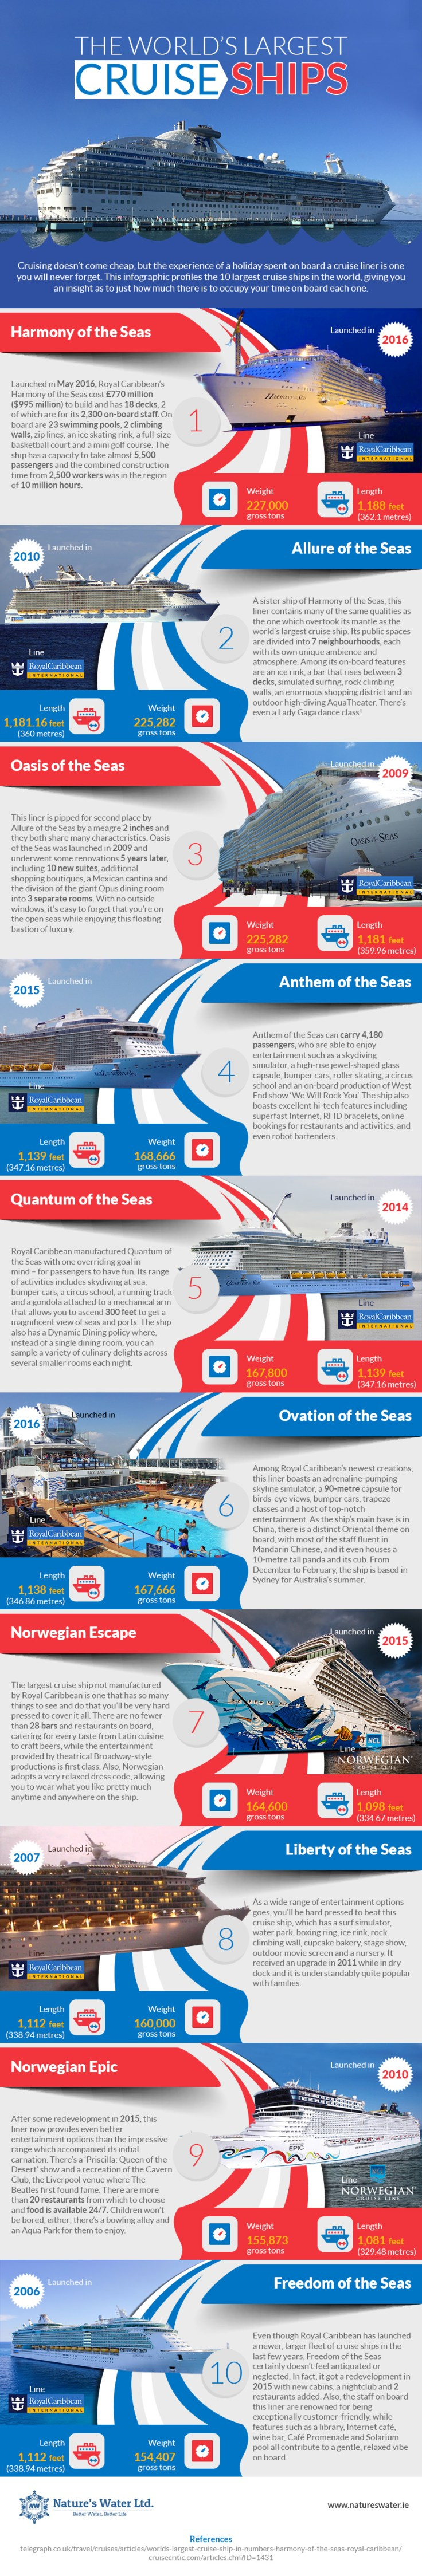 The-Worlds-Largest-Cruise-Ships